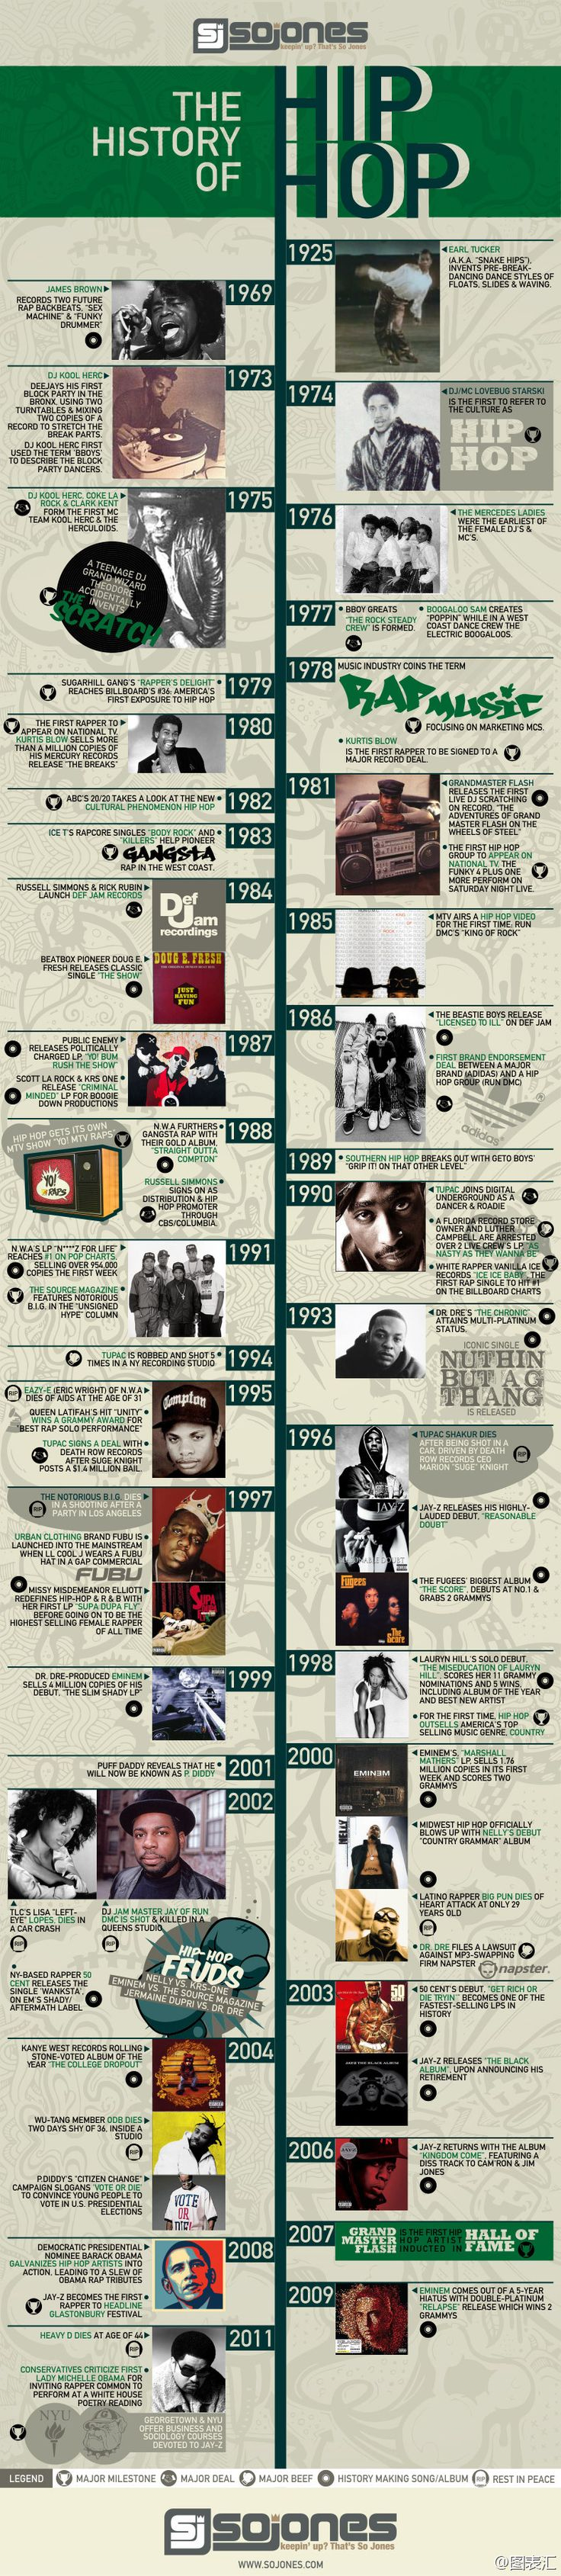 The History of Hip-Hop. Missing some MAJOR artists and their milestones, but still fun.